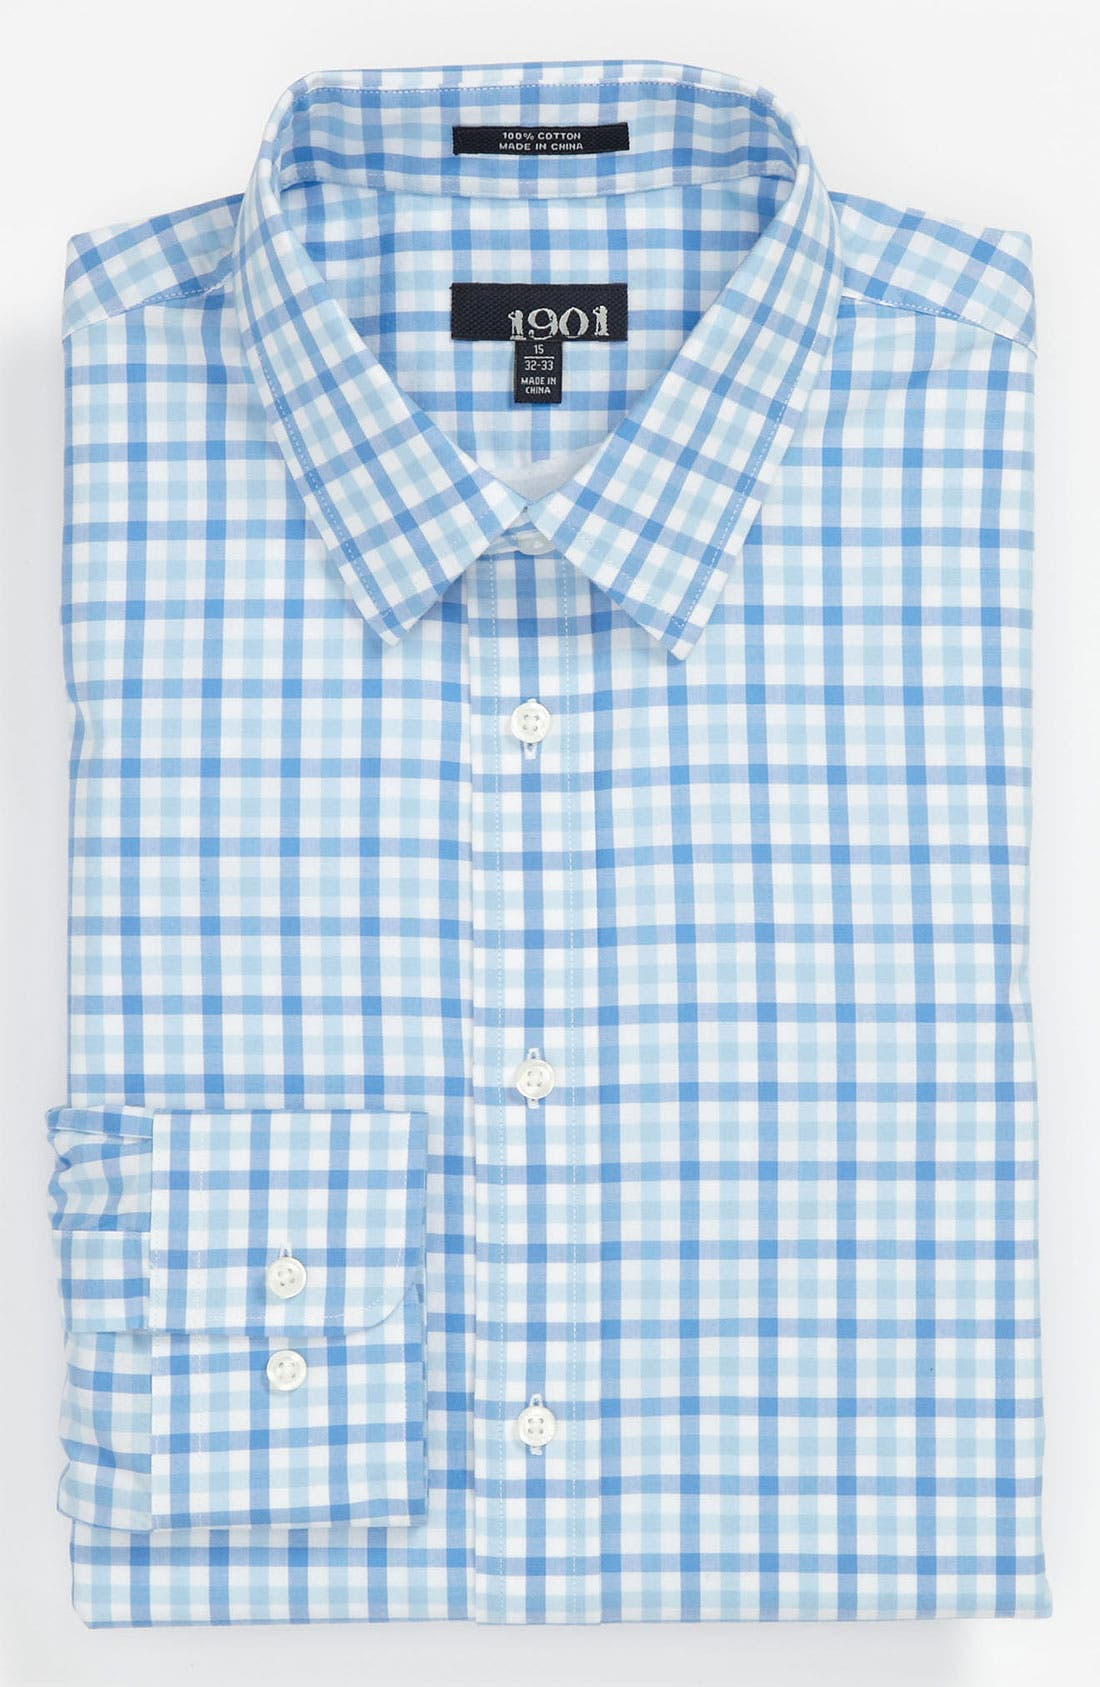 Alternate Image 1 Selected - 1901 Trim Fit Cotton Dress Shirt